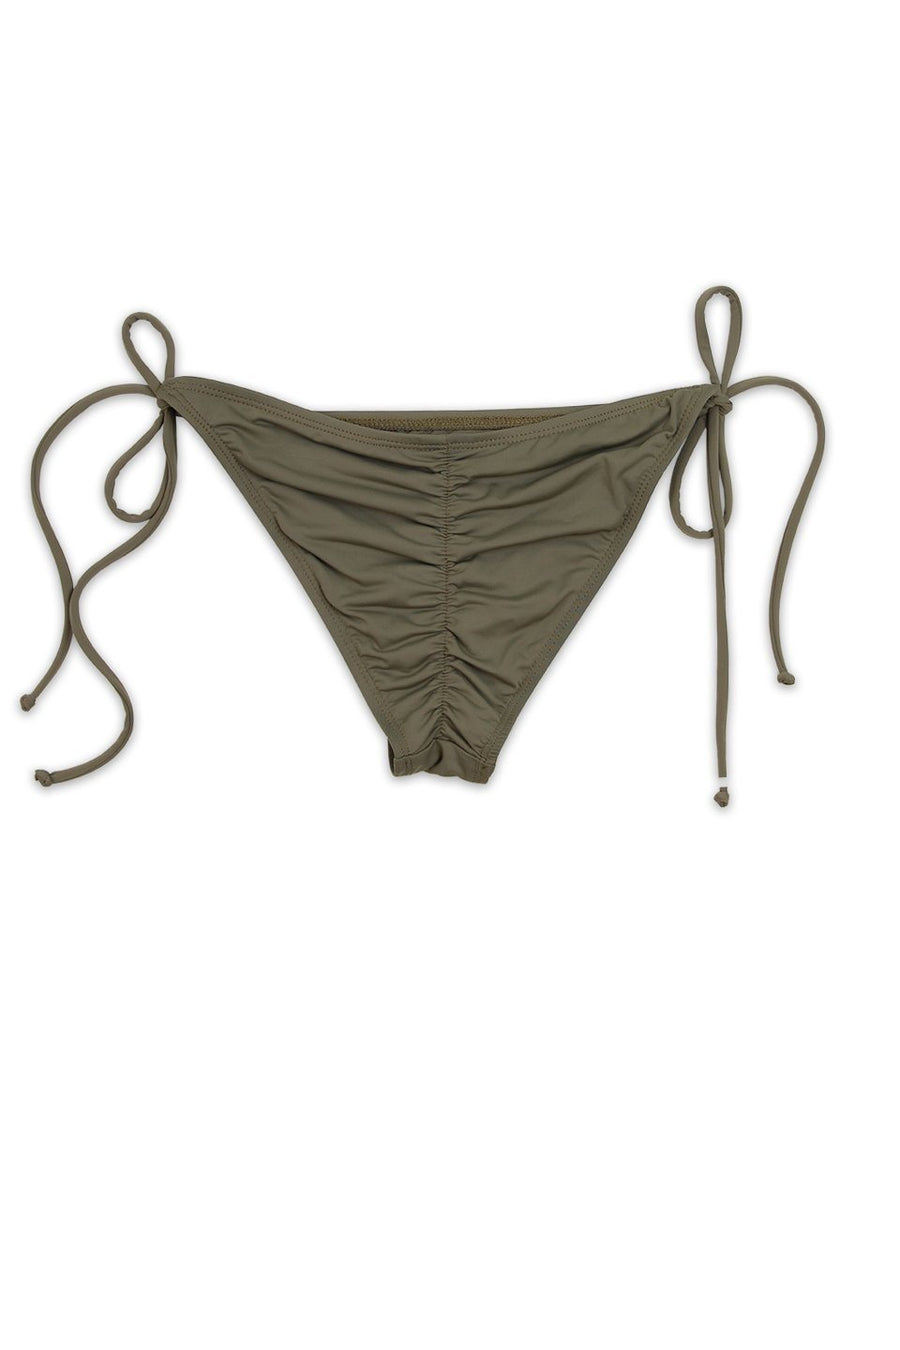 Taupe Scrunch Butt Bikini Bottom Front - Dippin' Daisy's Swimwear